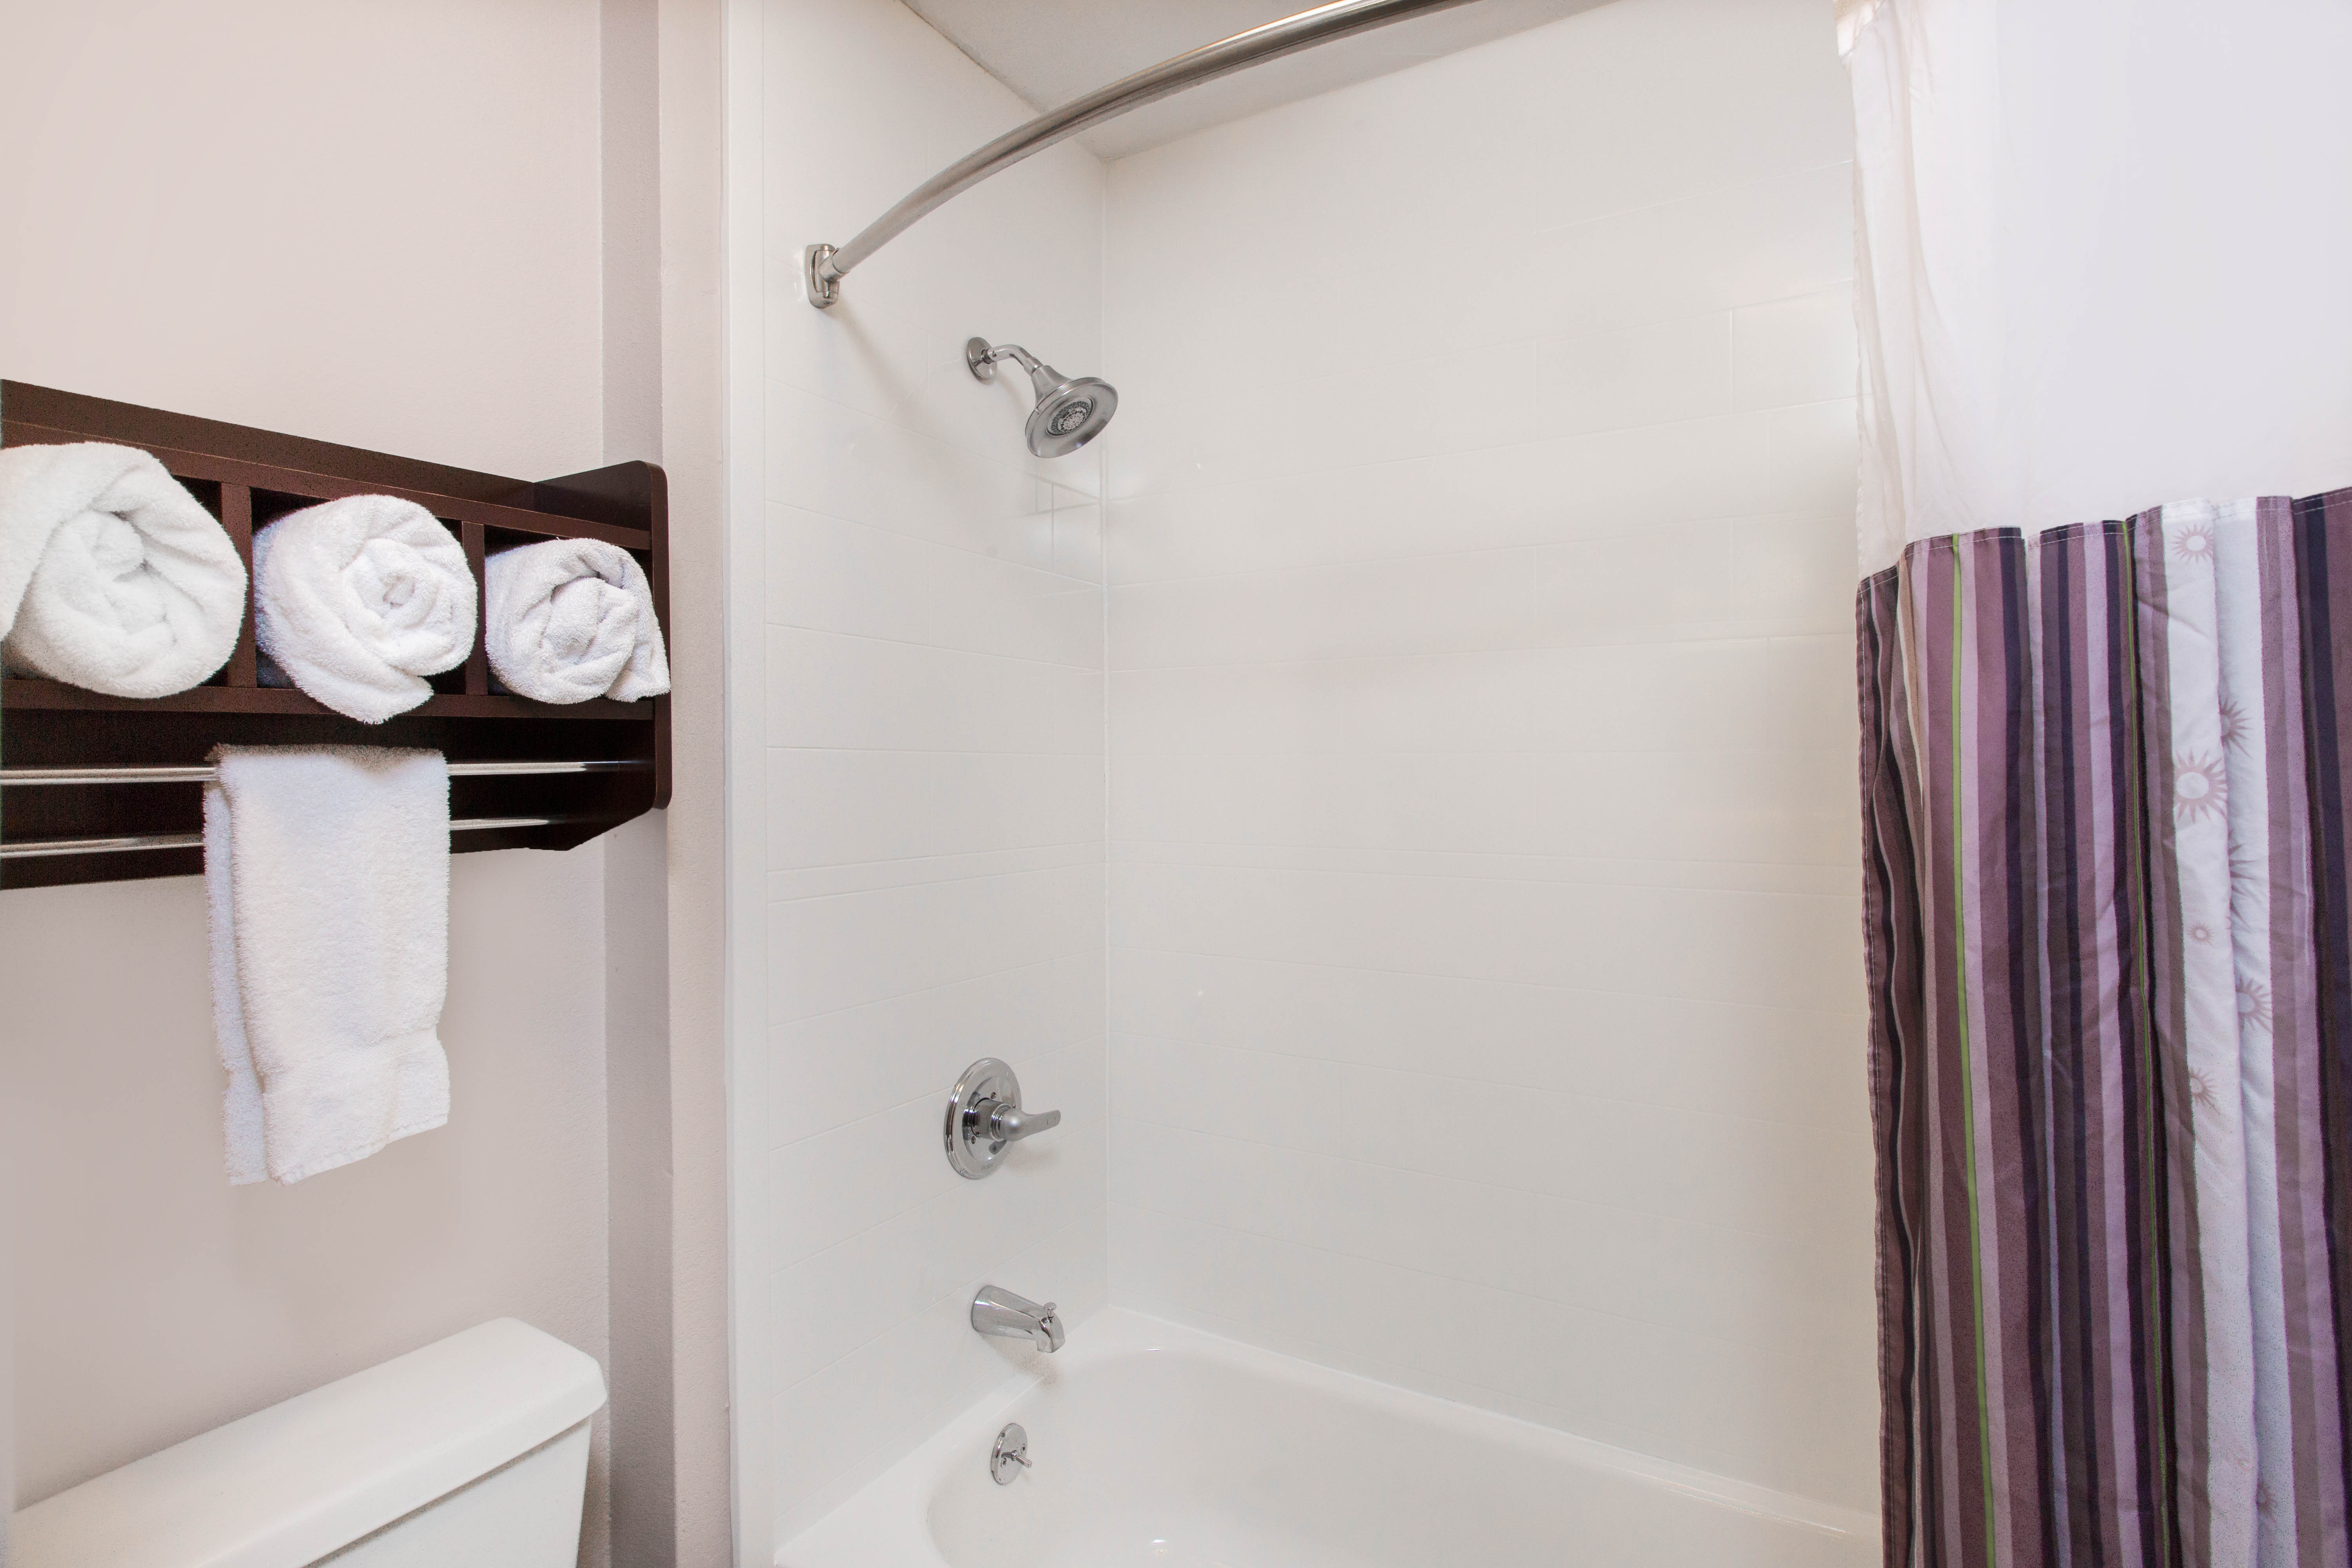 https://www.hotelsbyday.com/_data/default-hotel_image/2/12918/standardbathroom2.jpg